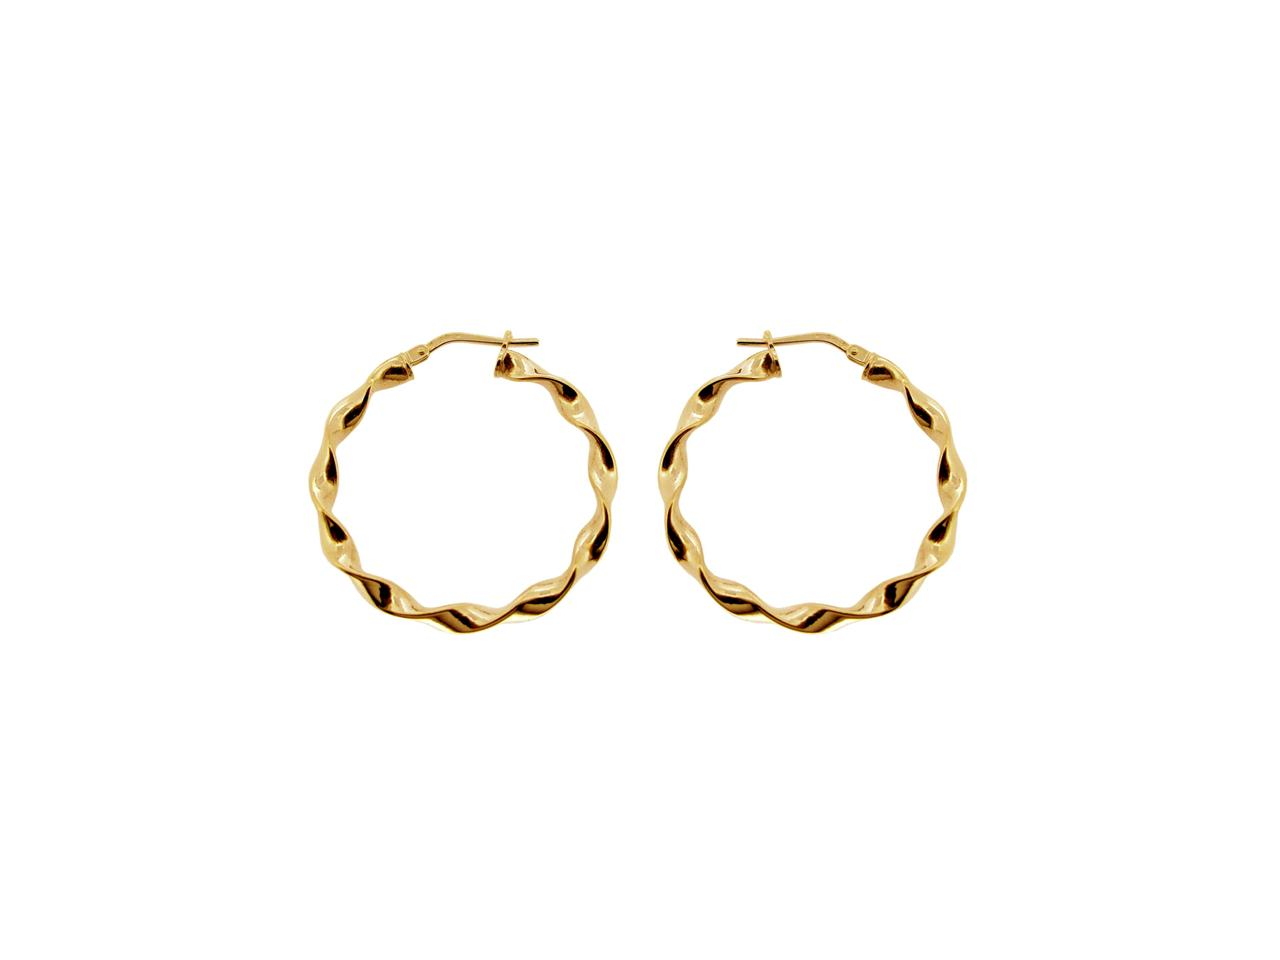 375 9ct Solid Yellow Gold Round Creole Twist Tube Hoop